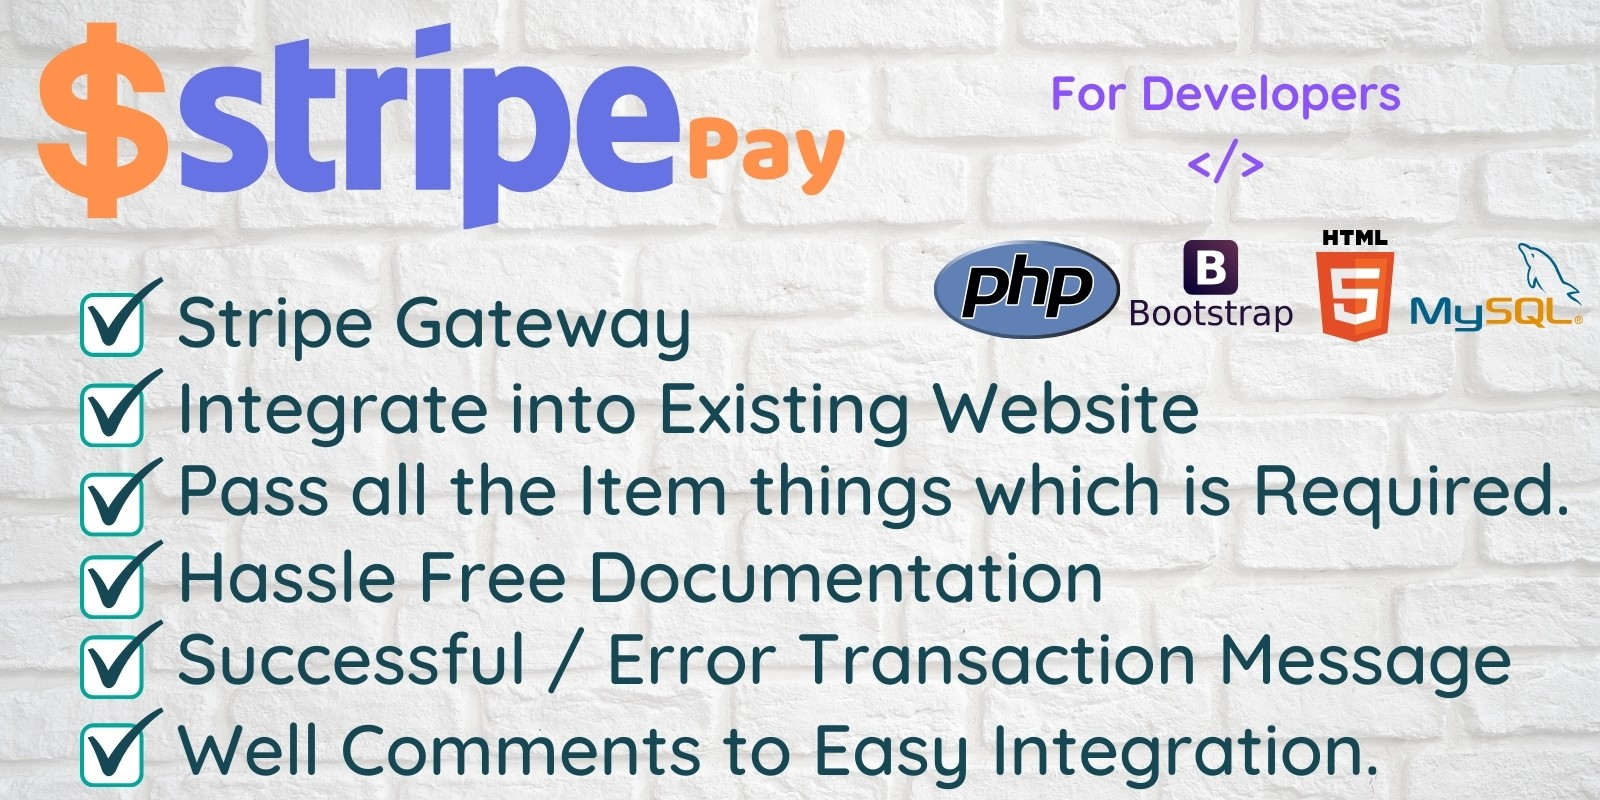 Stripe Pay for PHP Developers